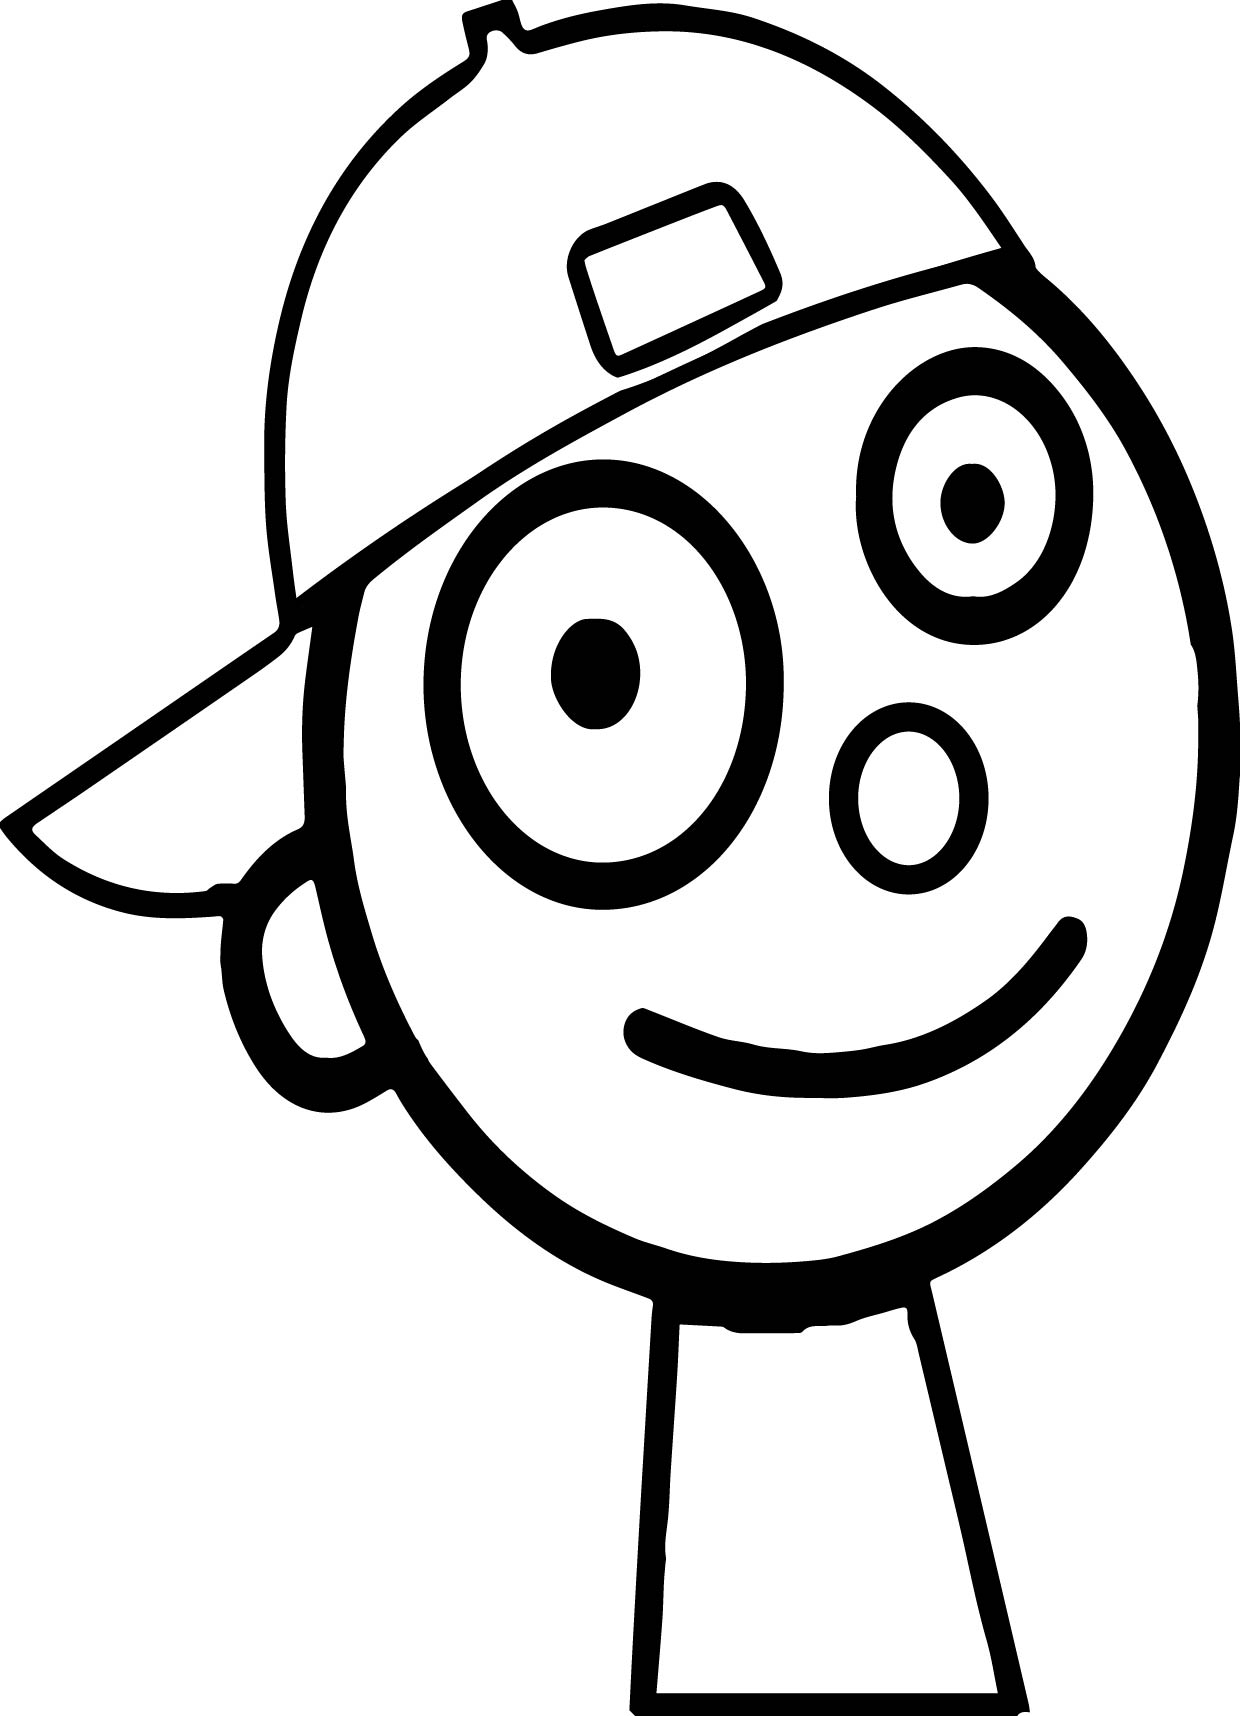 Pbs kids children coloring page for Pbskids coloring pages